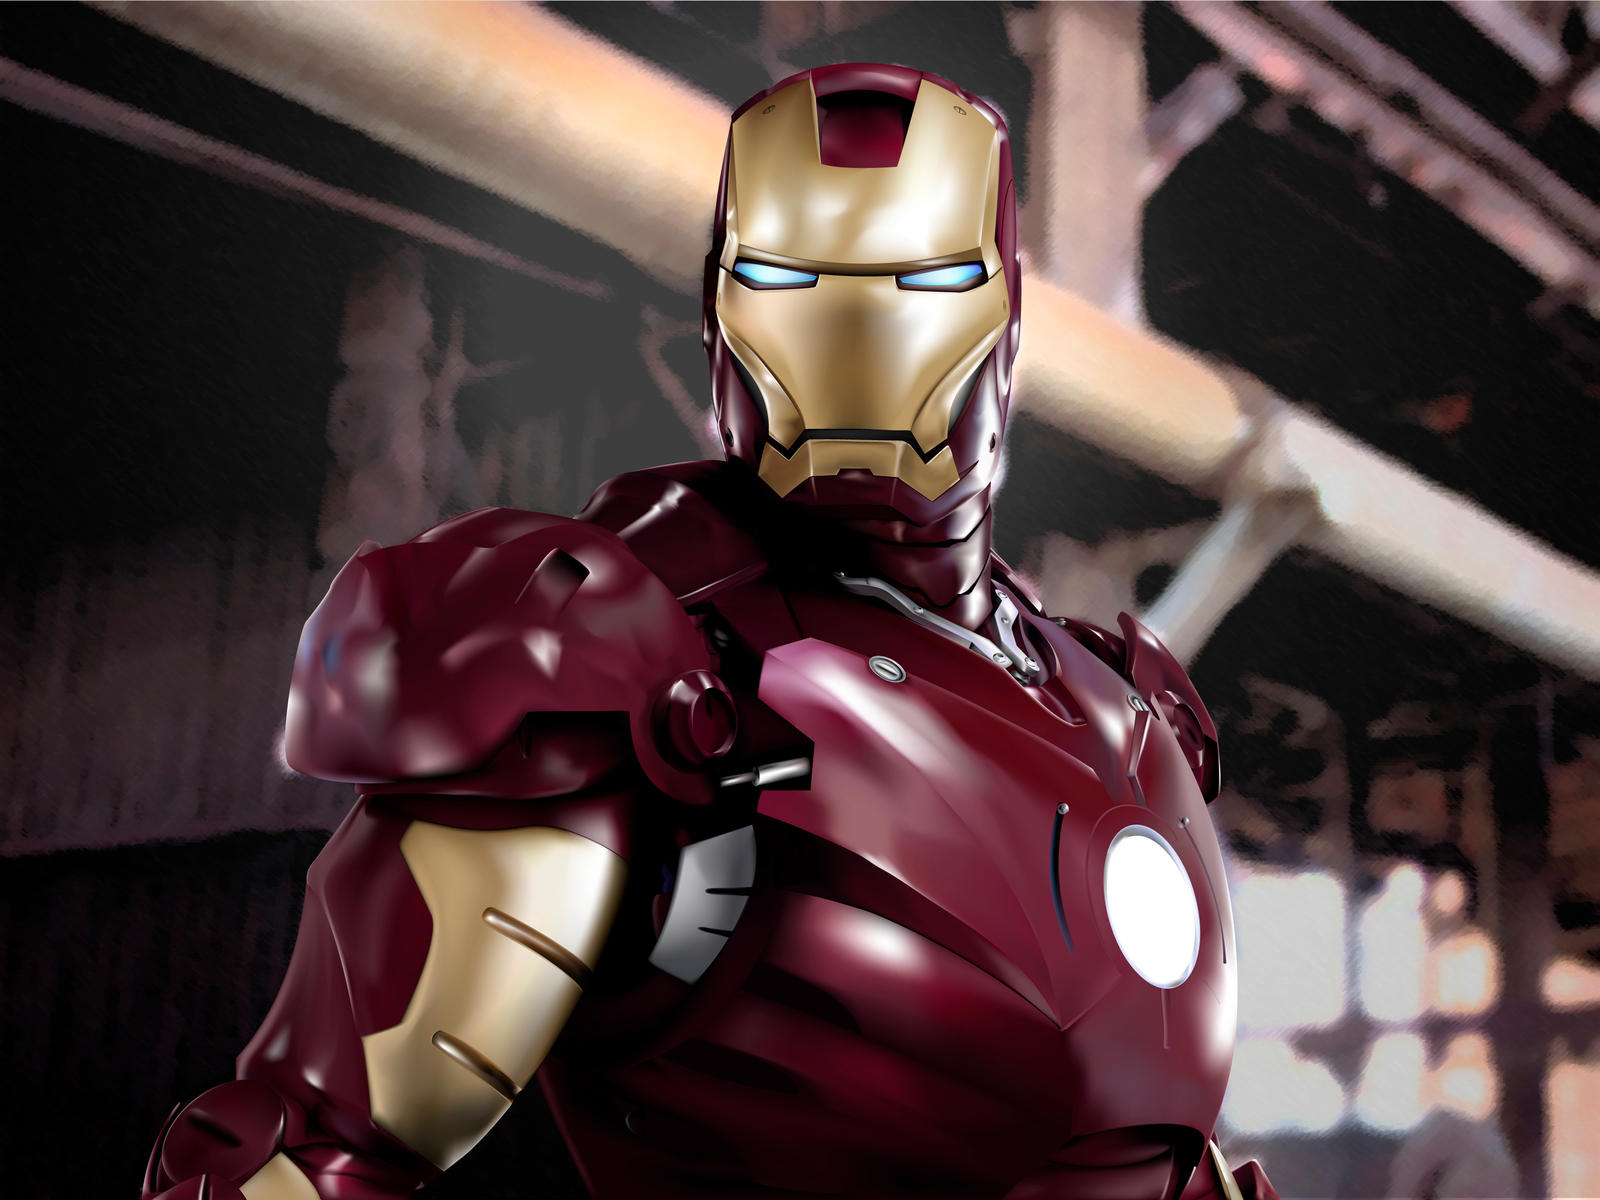 1600x1200 HD Widescreen iron man 3 | 1600x1200 | 388 kB by Alston ...